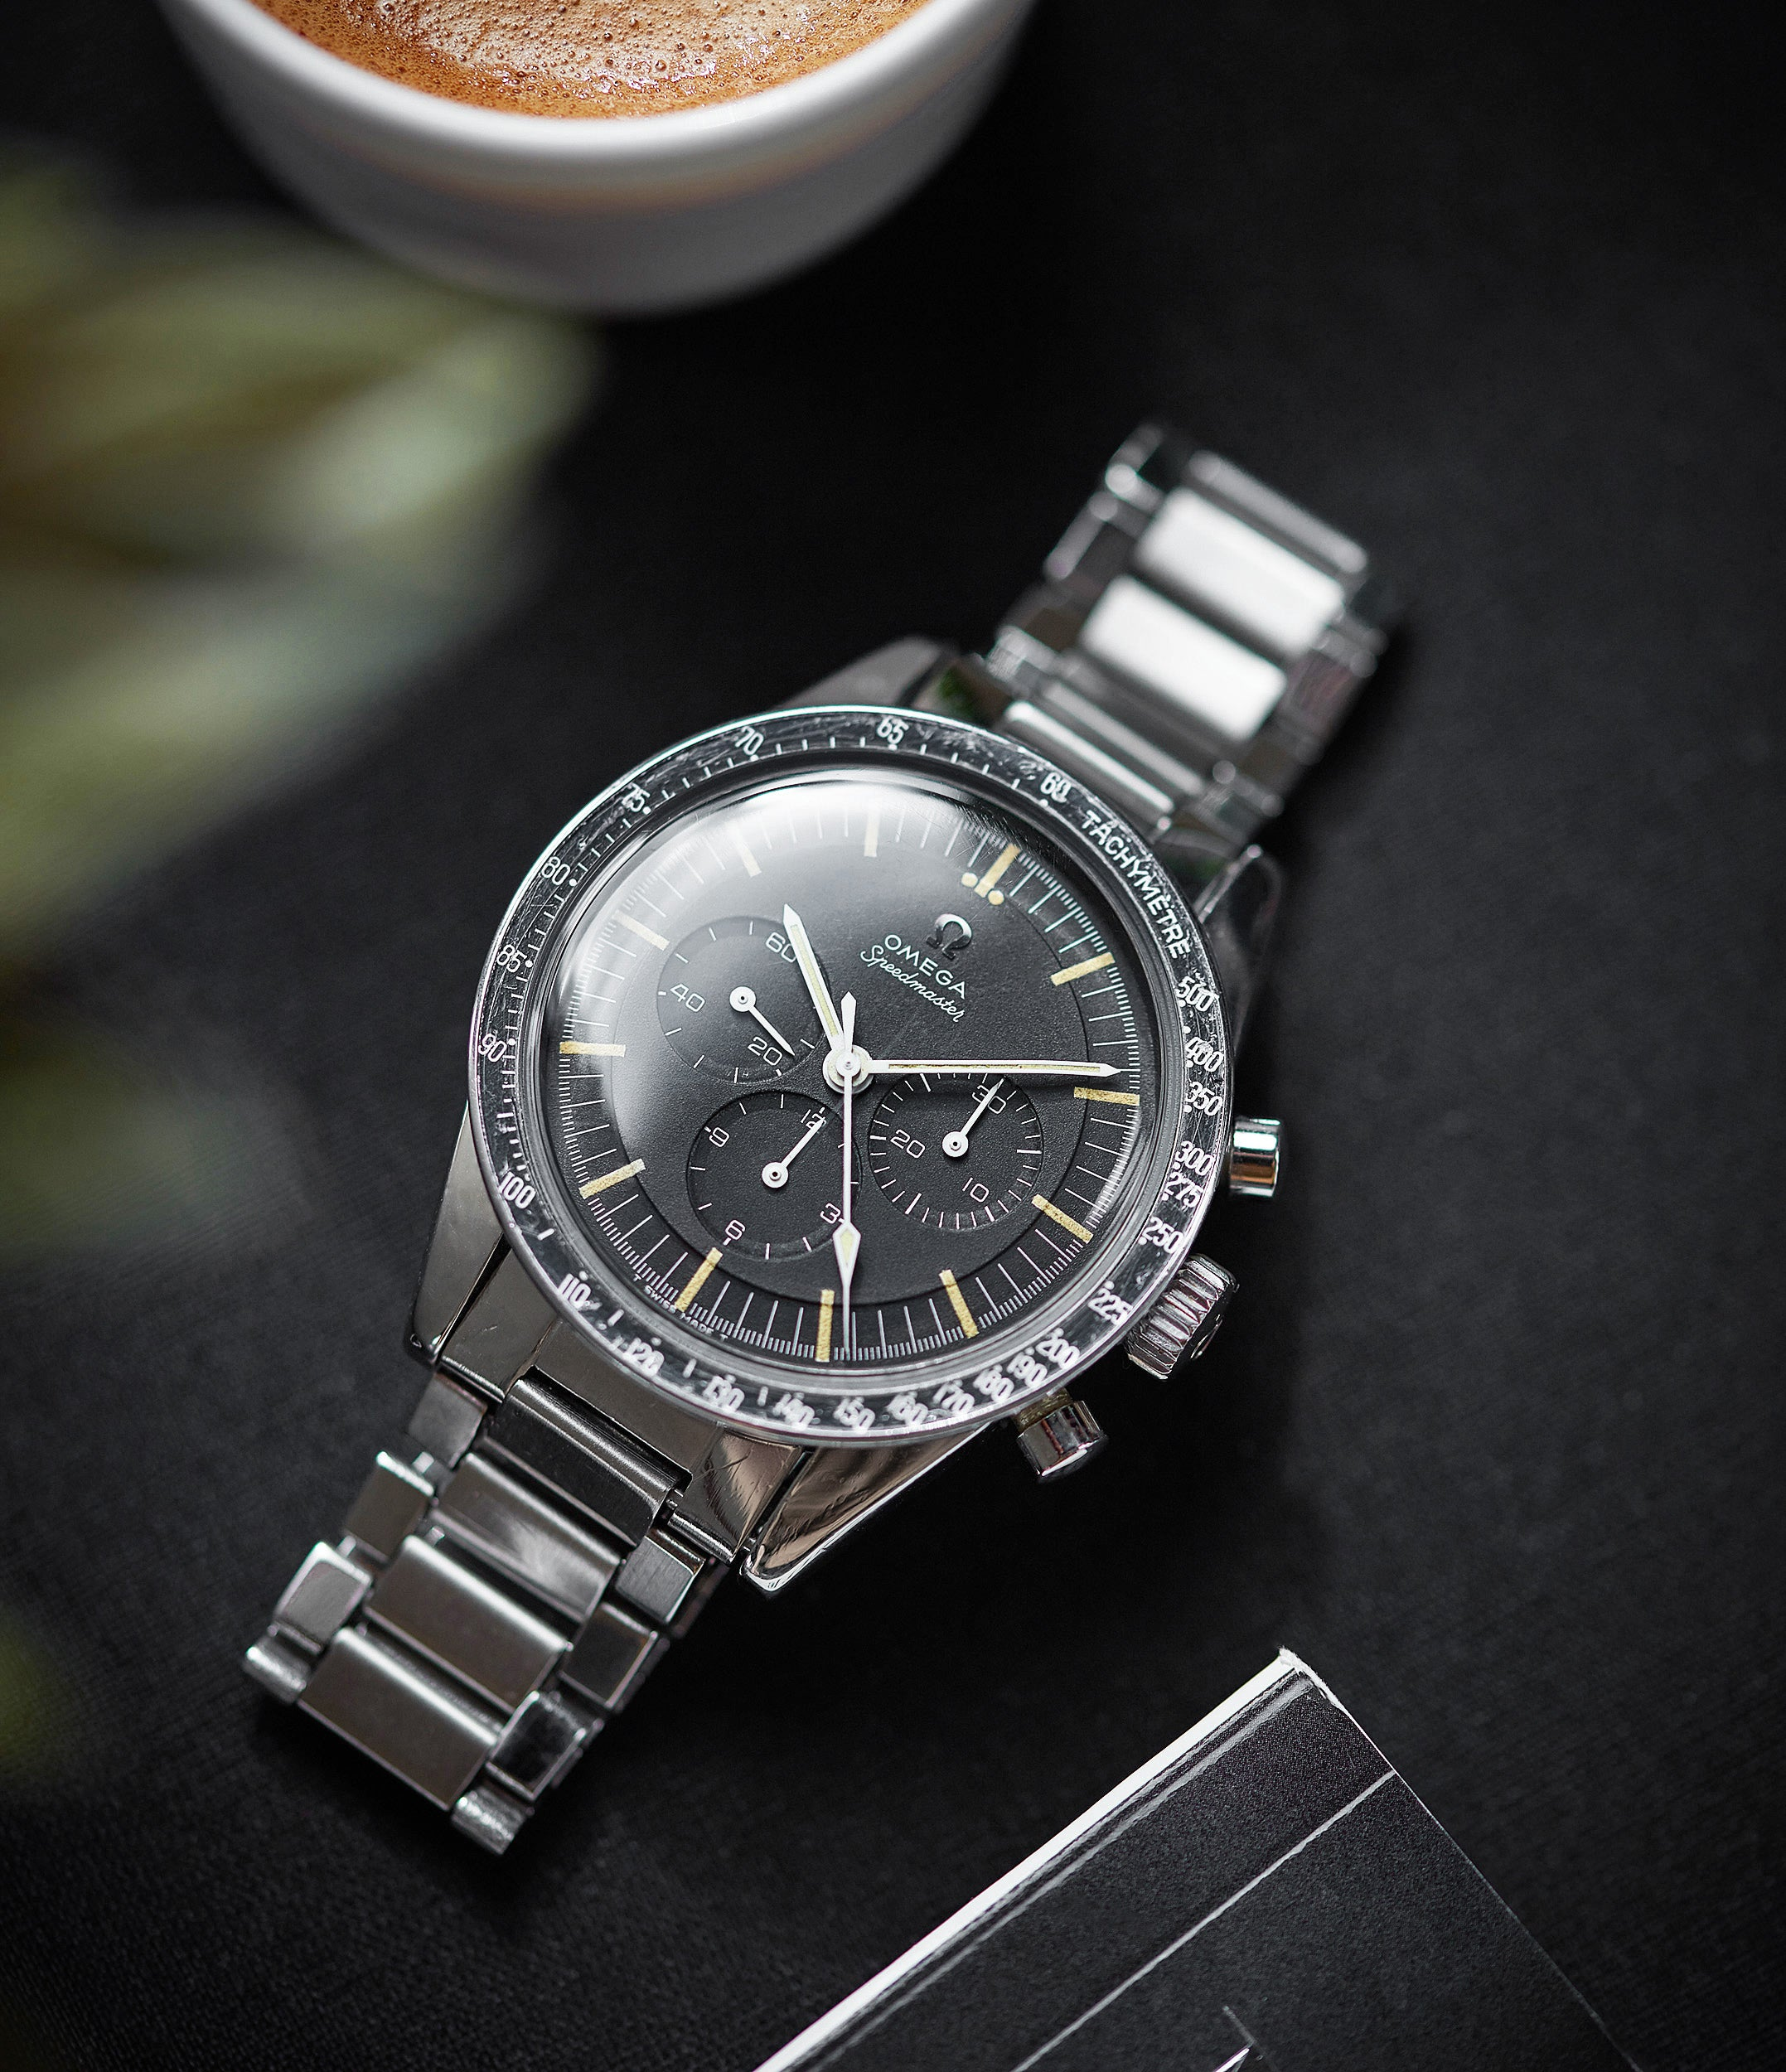 Speedmaster pre-professional Ed White Omega 105.003-65 steel chronograph sports watch online at A Collected Man London